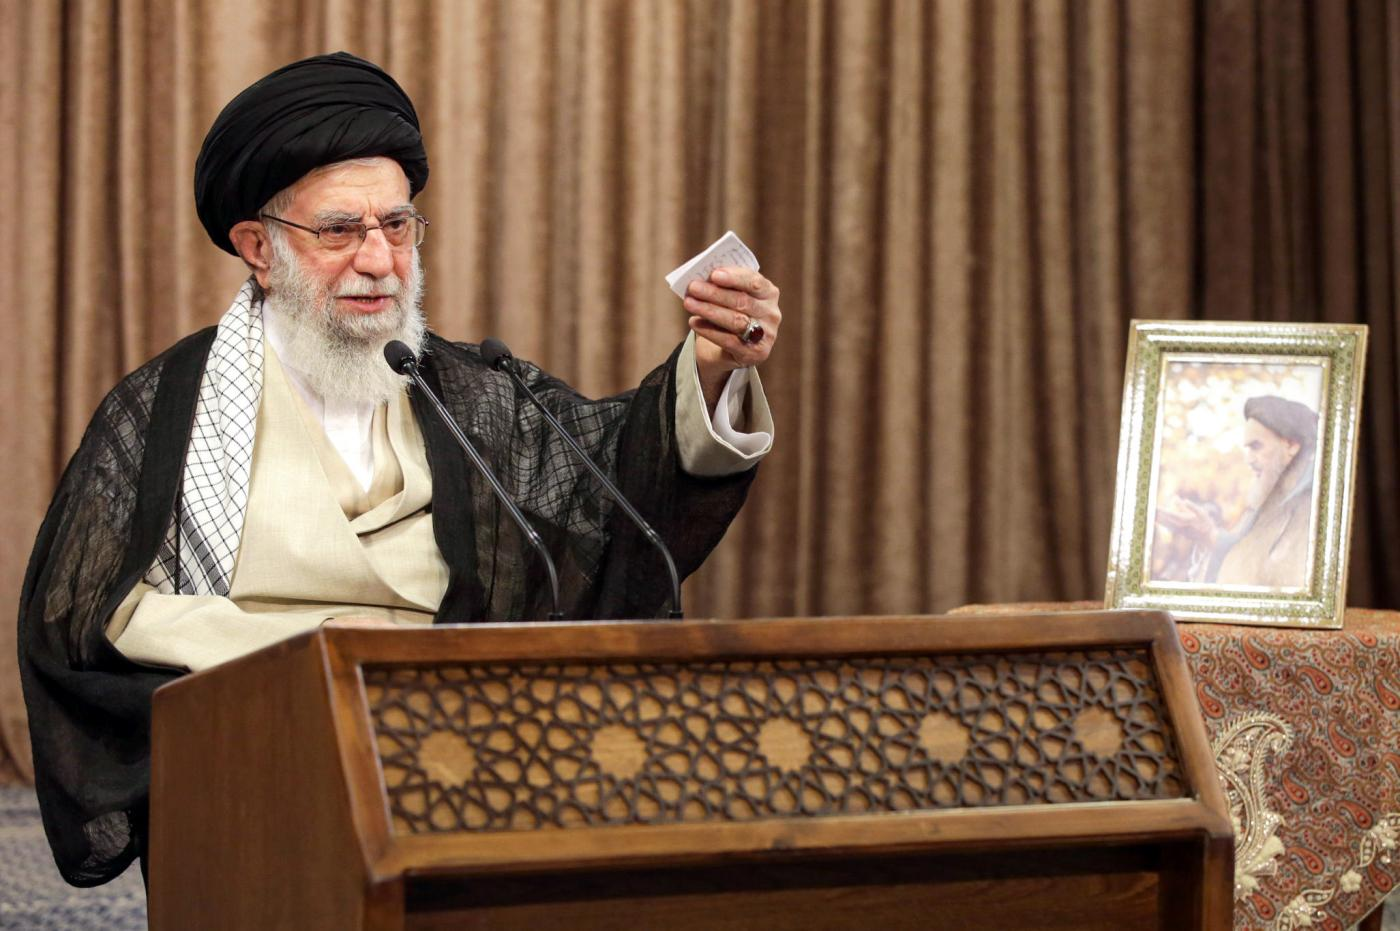 EXCLUSIVE: Iran's Khamenei ordered end to Iraqi attacks on US interests